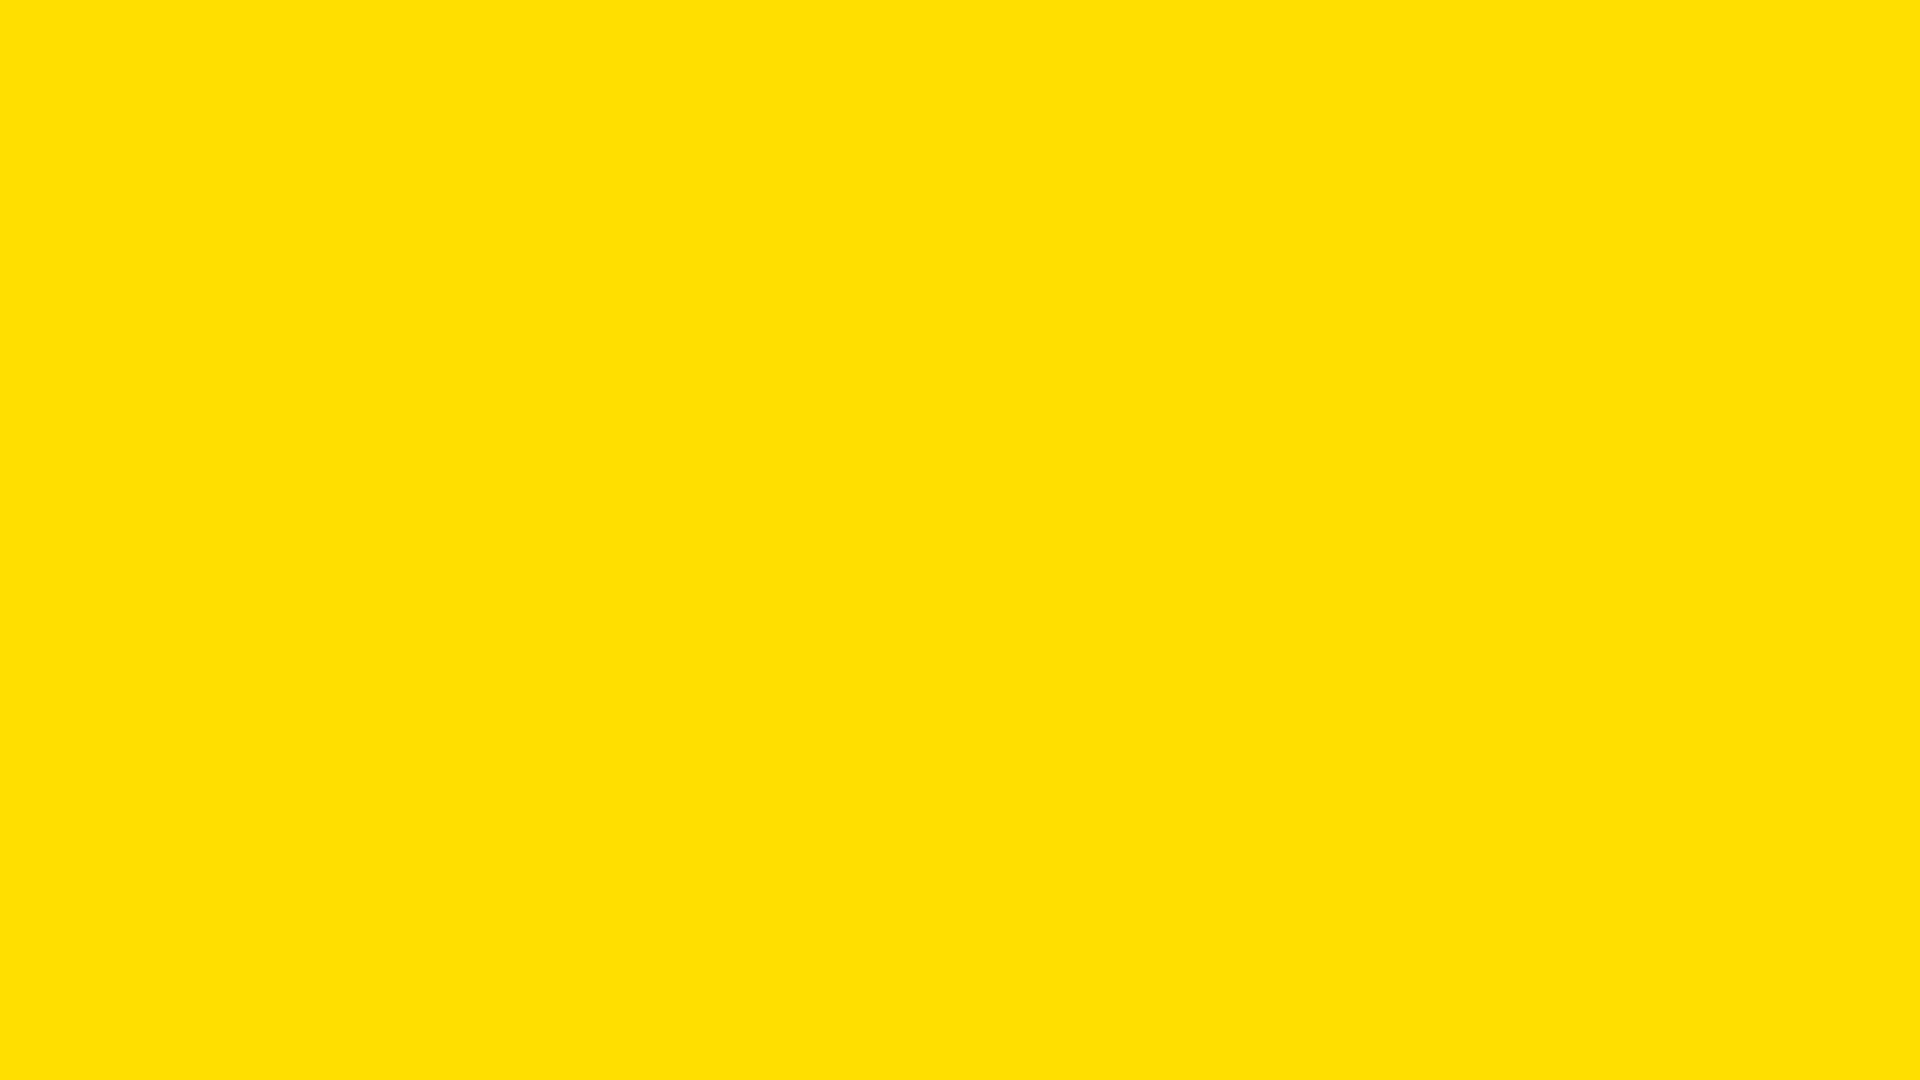 1920x1080 Golden Yellow Solid Color Background